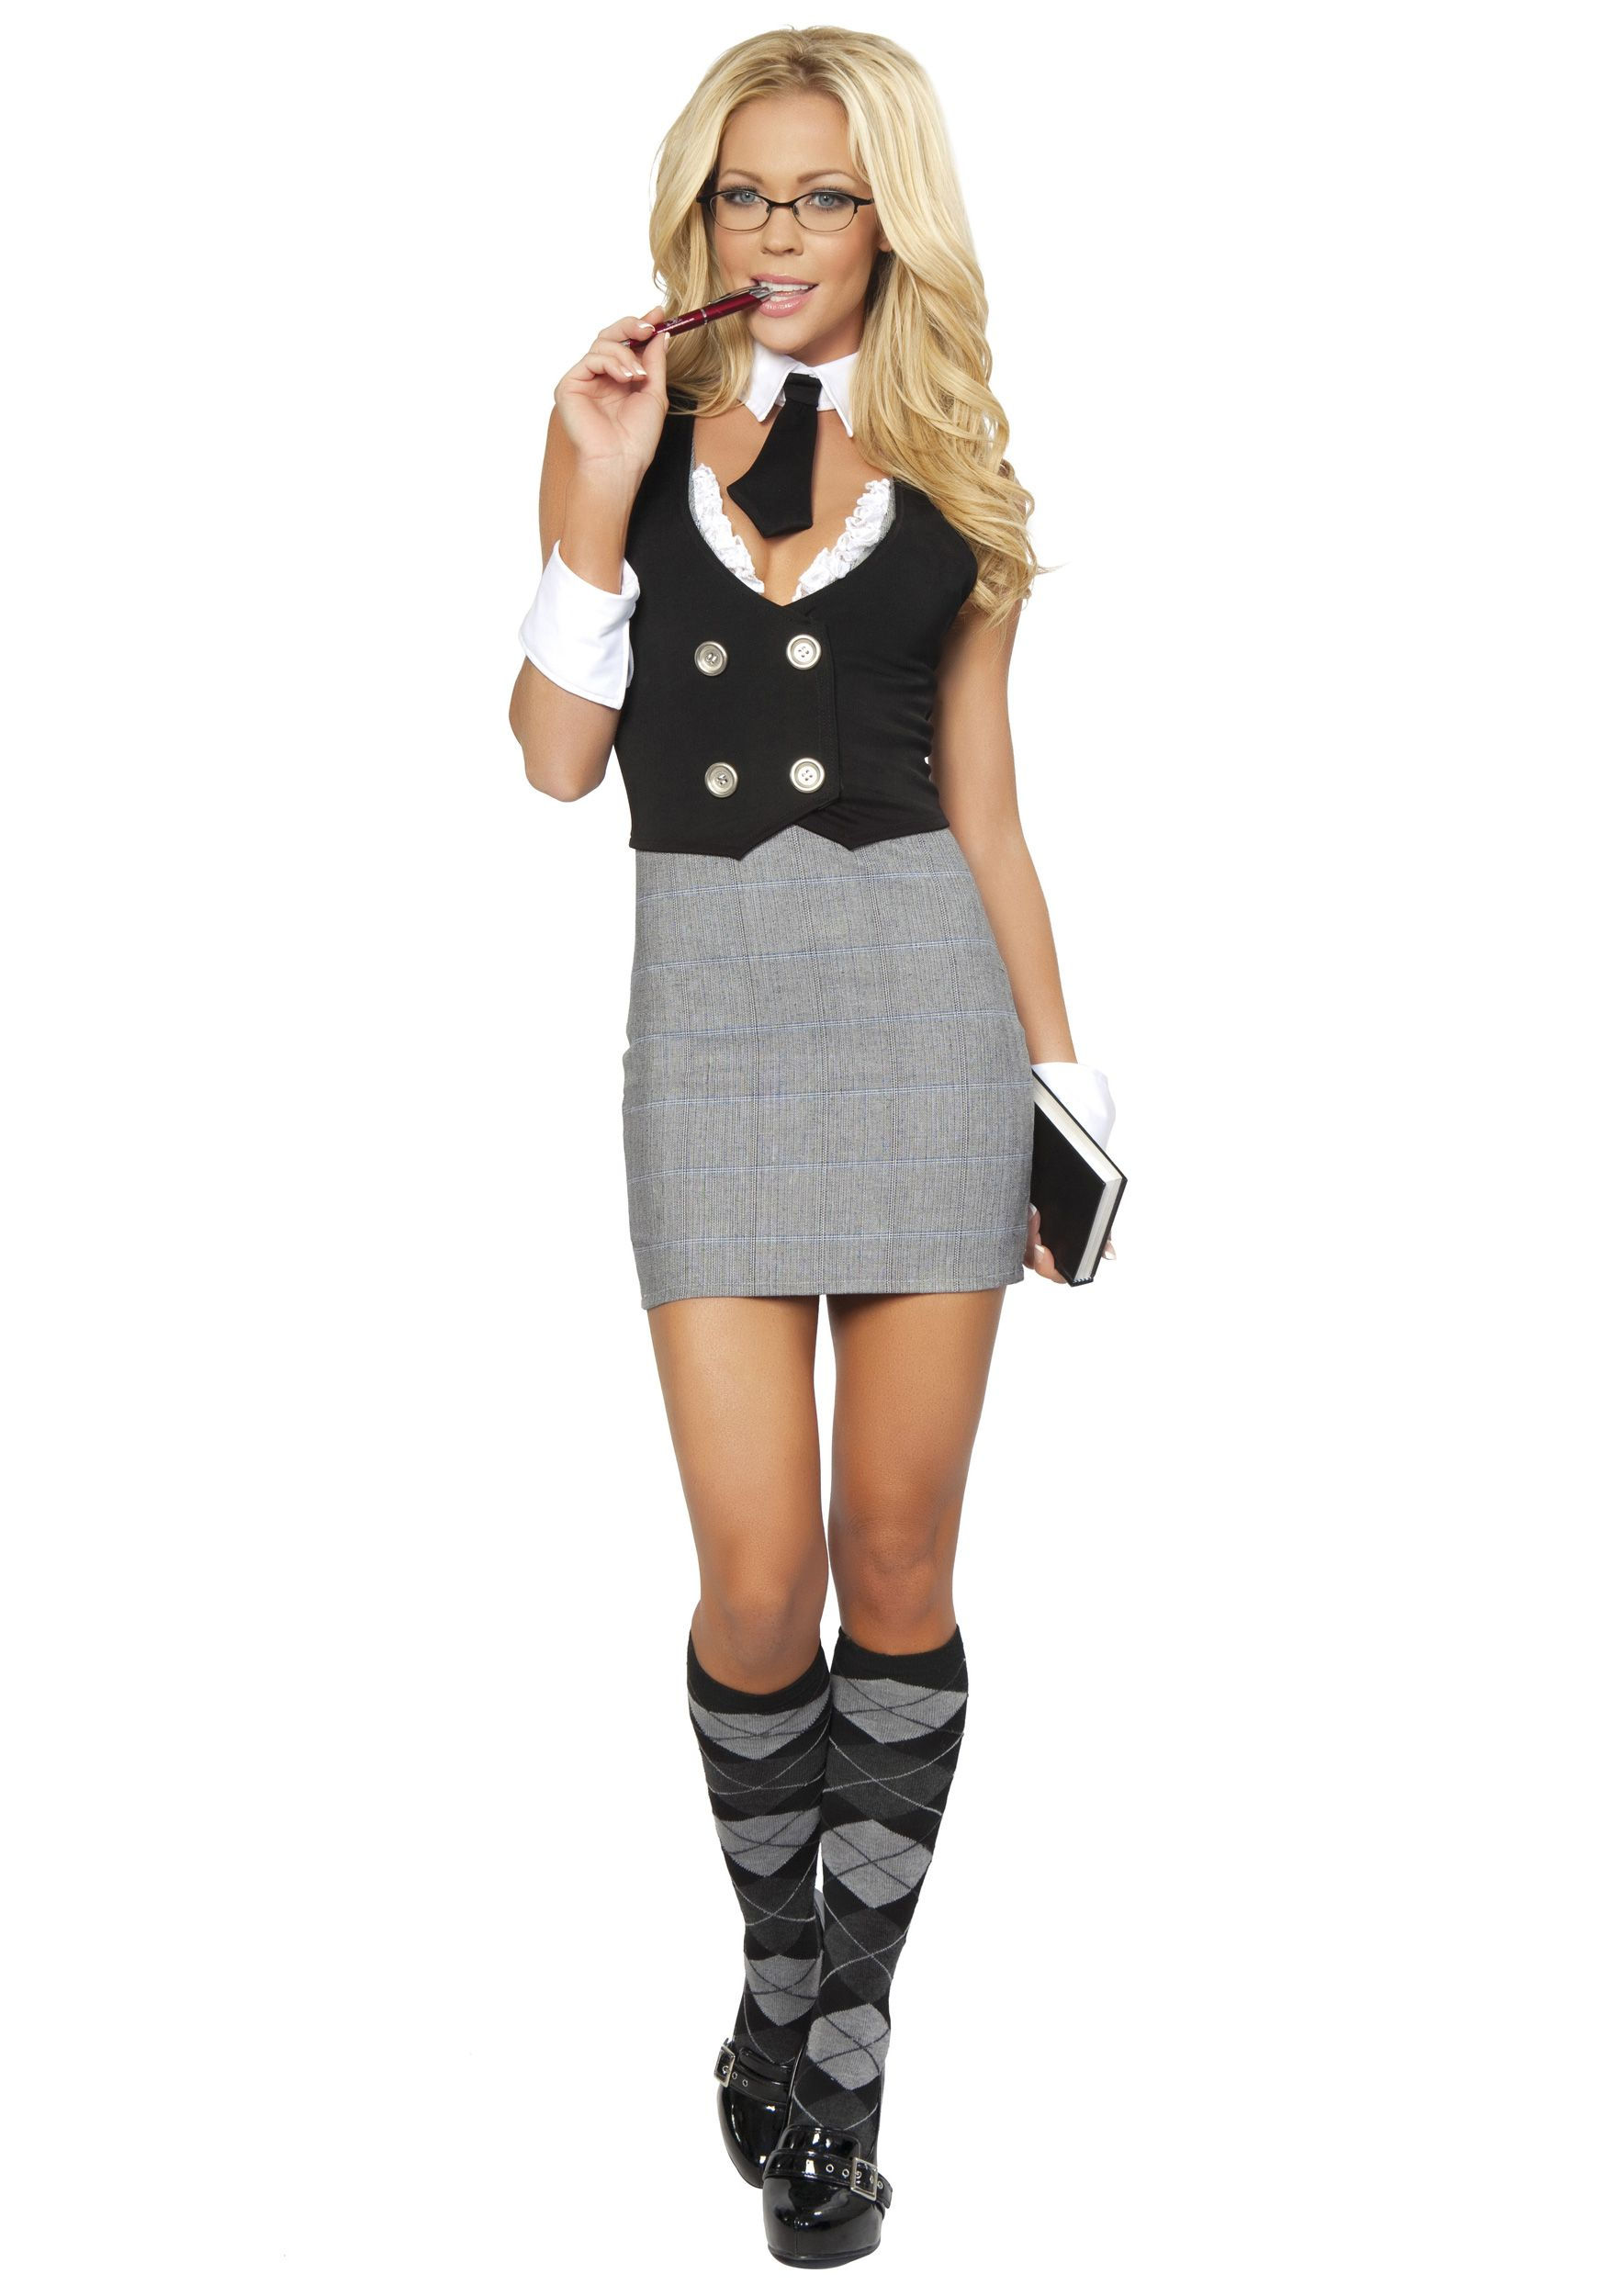 d10a67575a4c Sexy School Teacher Costume | Holiday Cheer | Teacher costumes ...